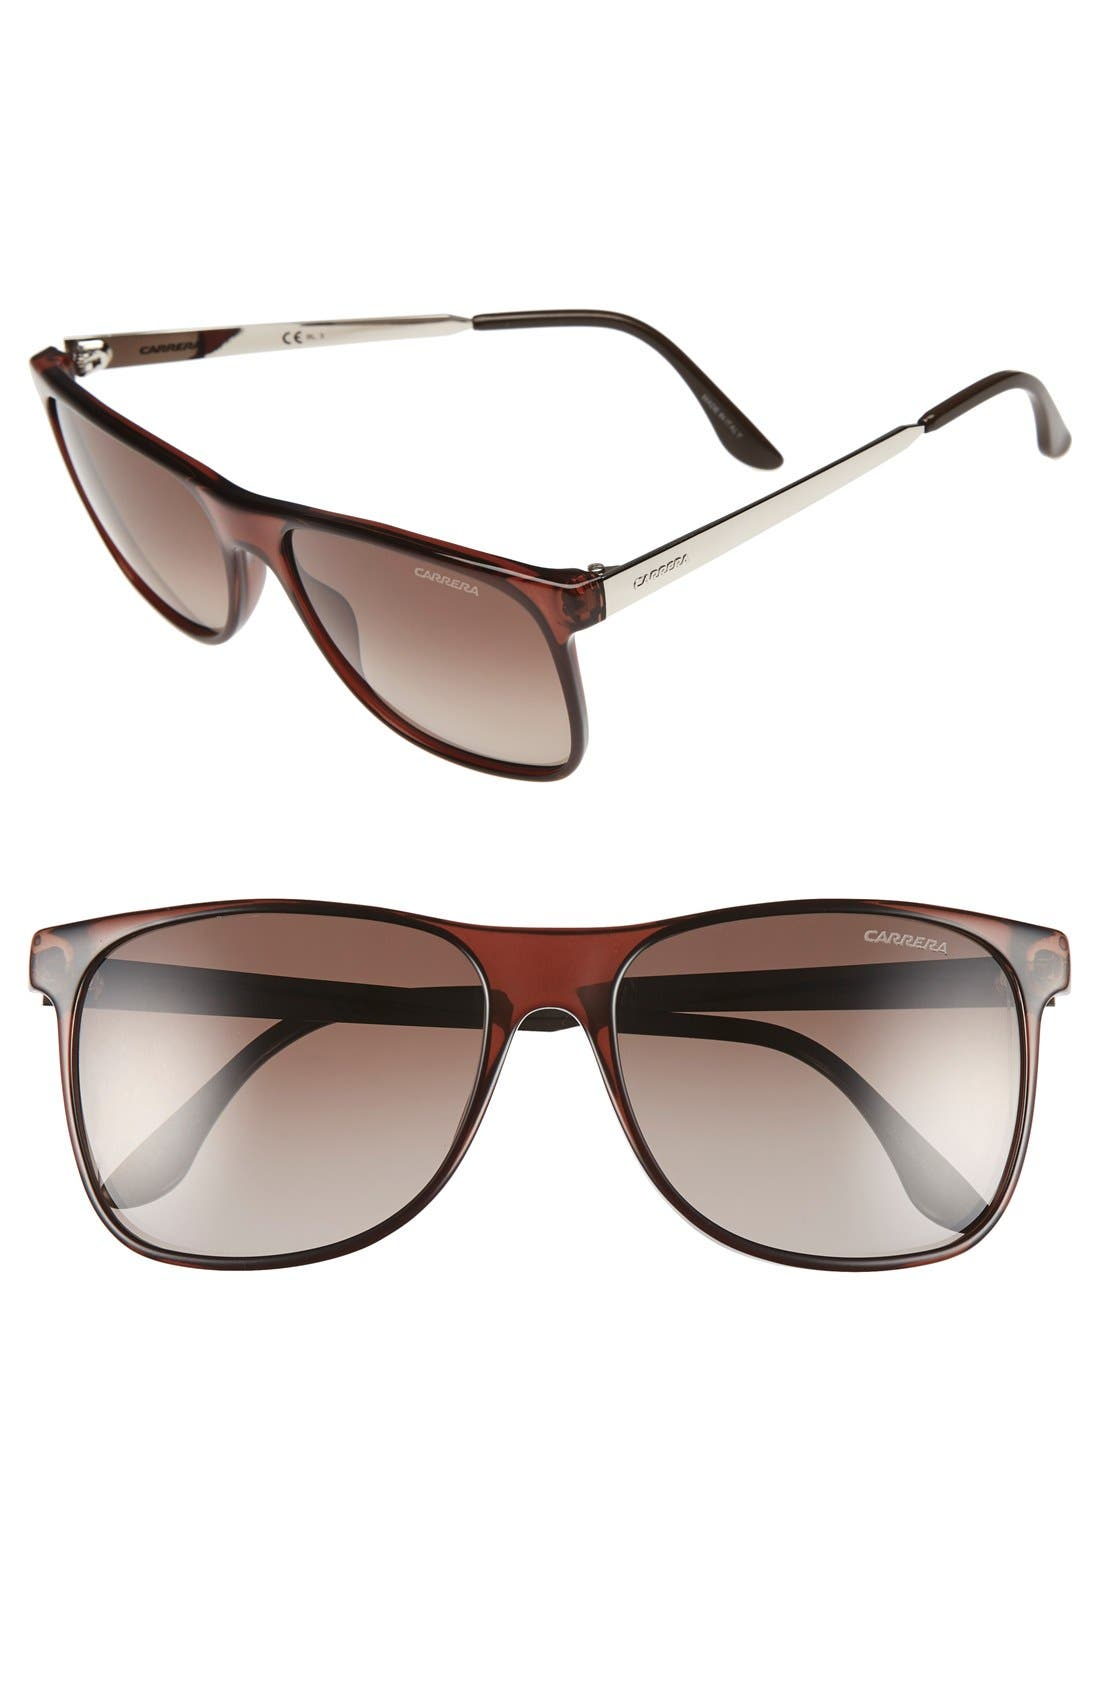 57mm Polarized Sunglasses,                         Main,                         color, Brown Gradient/ Silver Metal